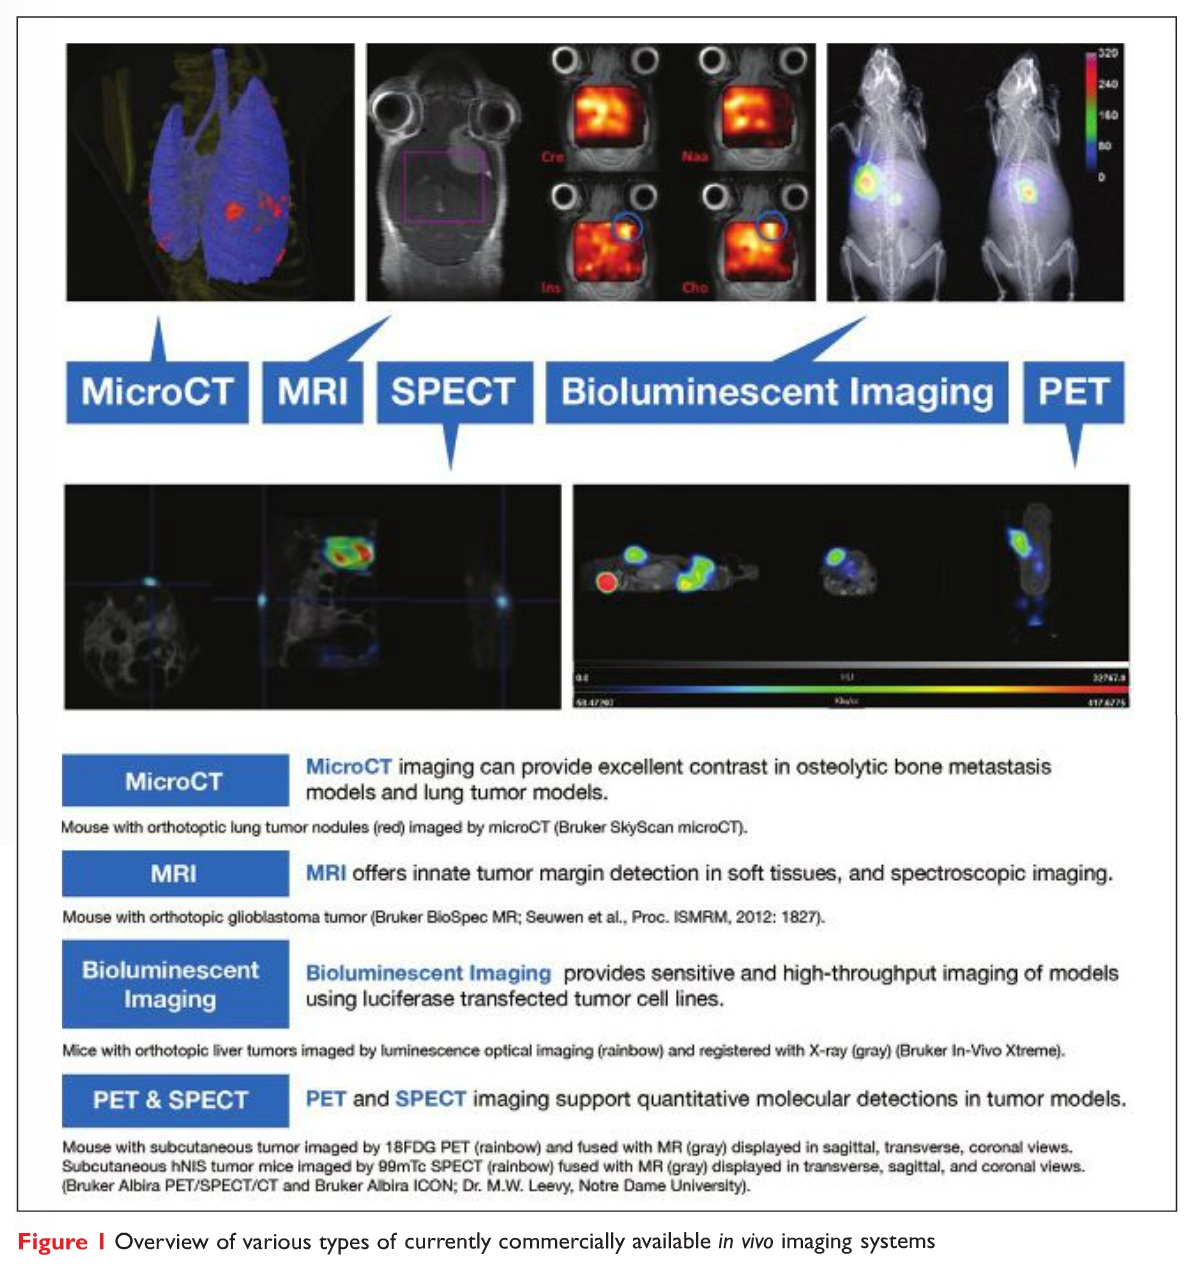 Figure 1 Overview of various types of currently commercially available in vivo imaging systems